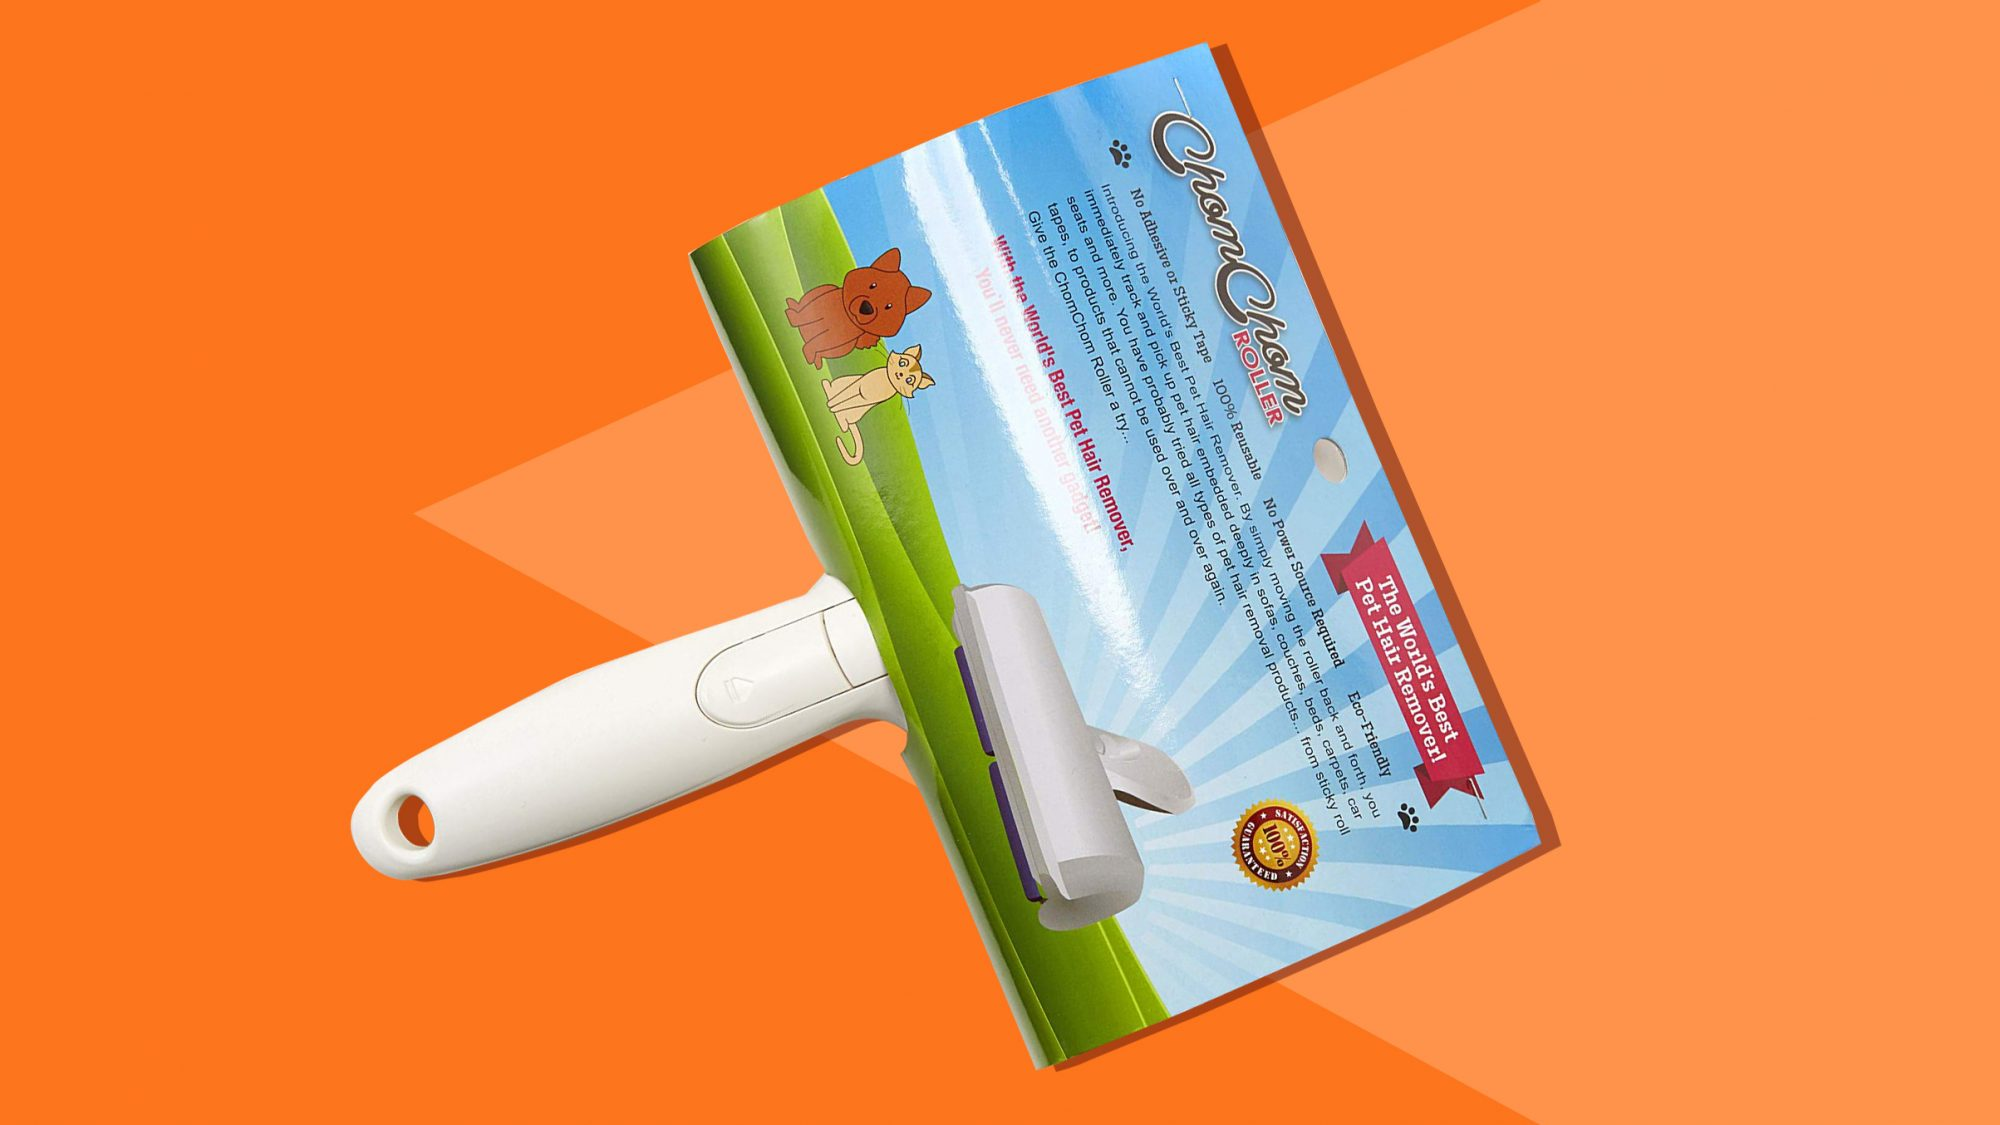 Chom Chom Roller and Pet Hair Remover